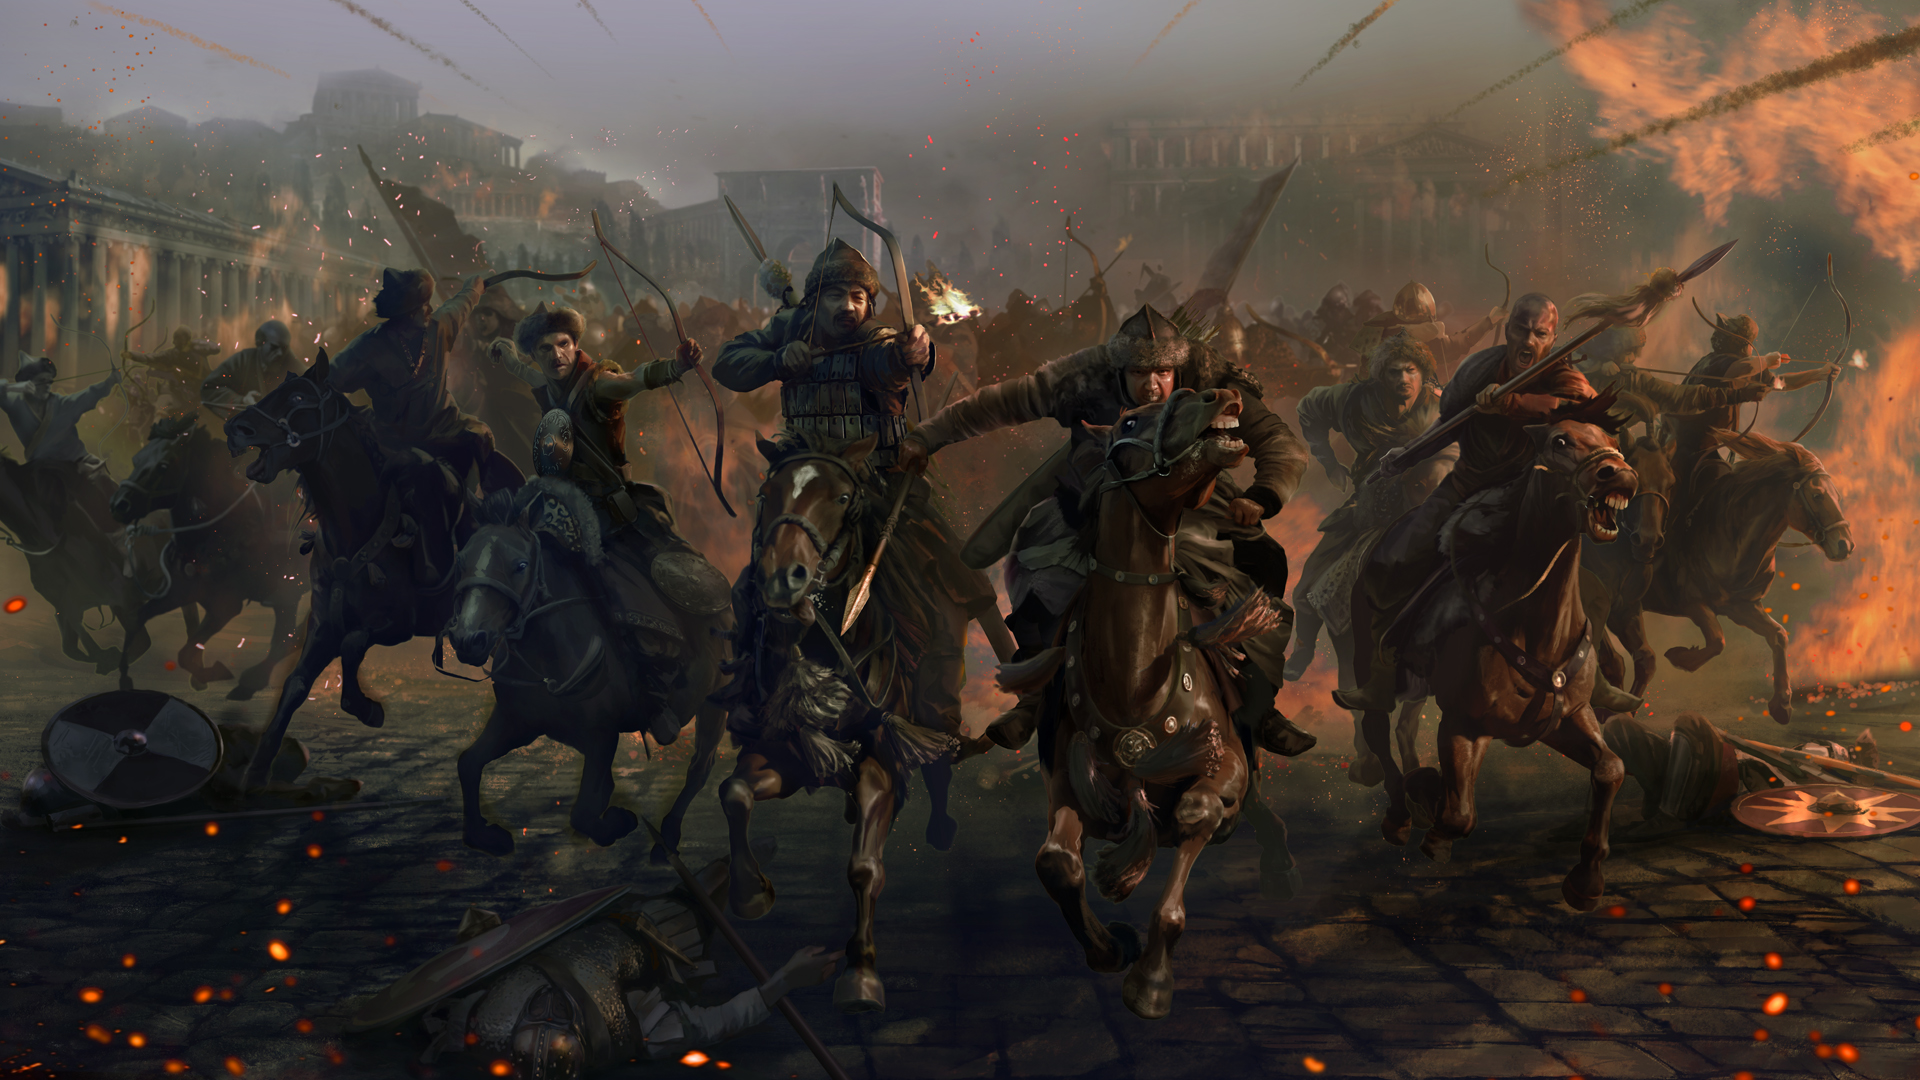 Total War: Attila HD Wallpaper | Background Image | 1920x1080 | ID:557144 -  Wallpaper Abyss